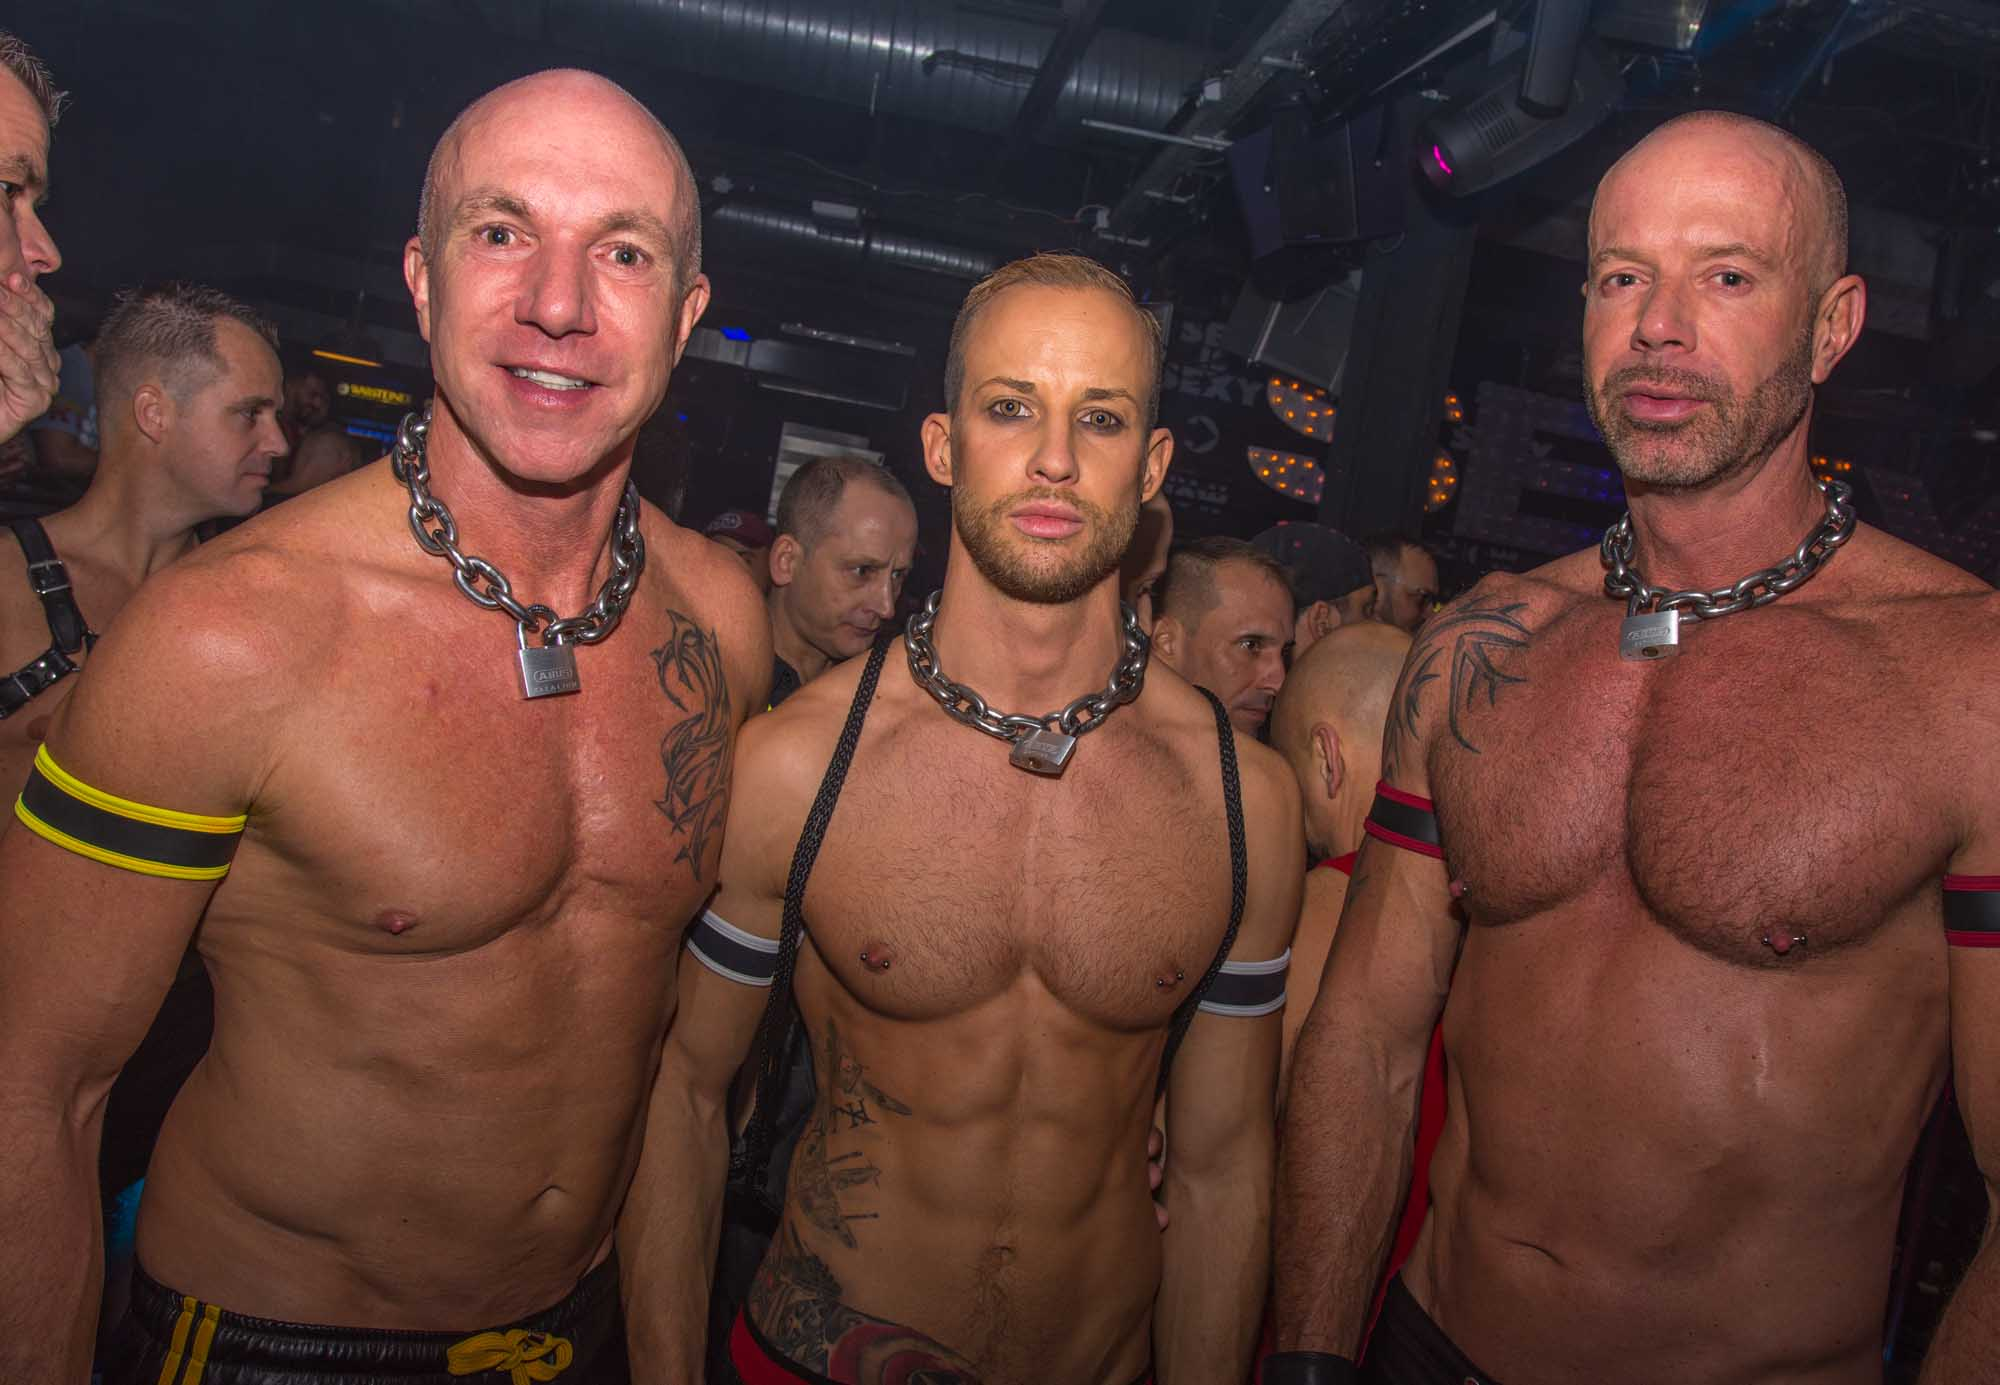 SEXY Party Cologne - Hustlaball 2018